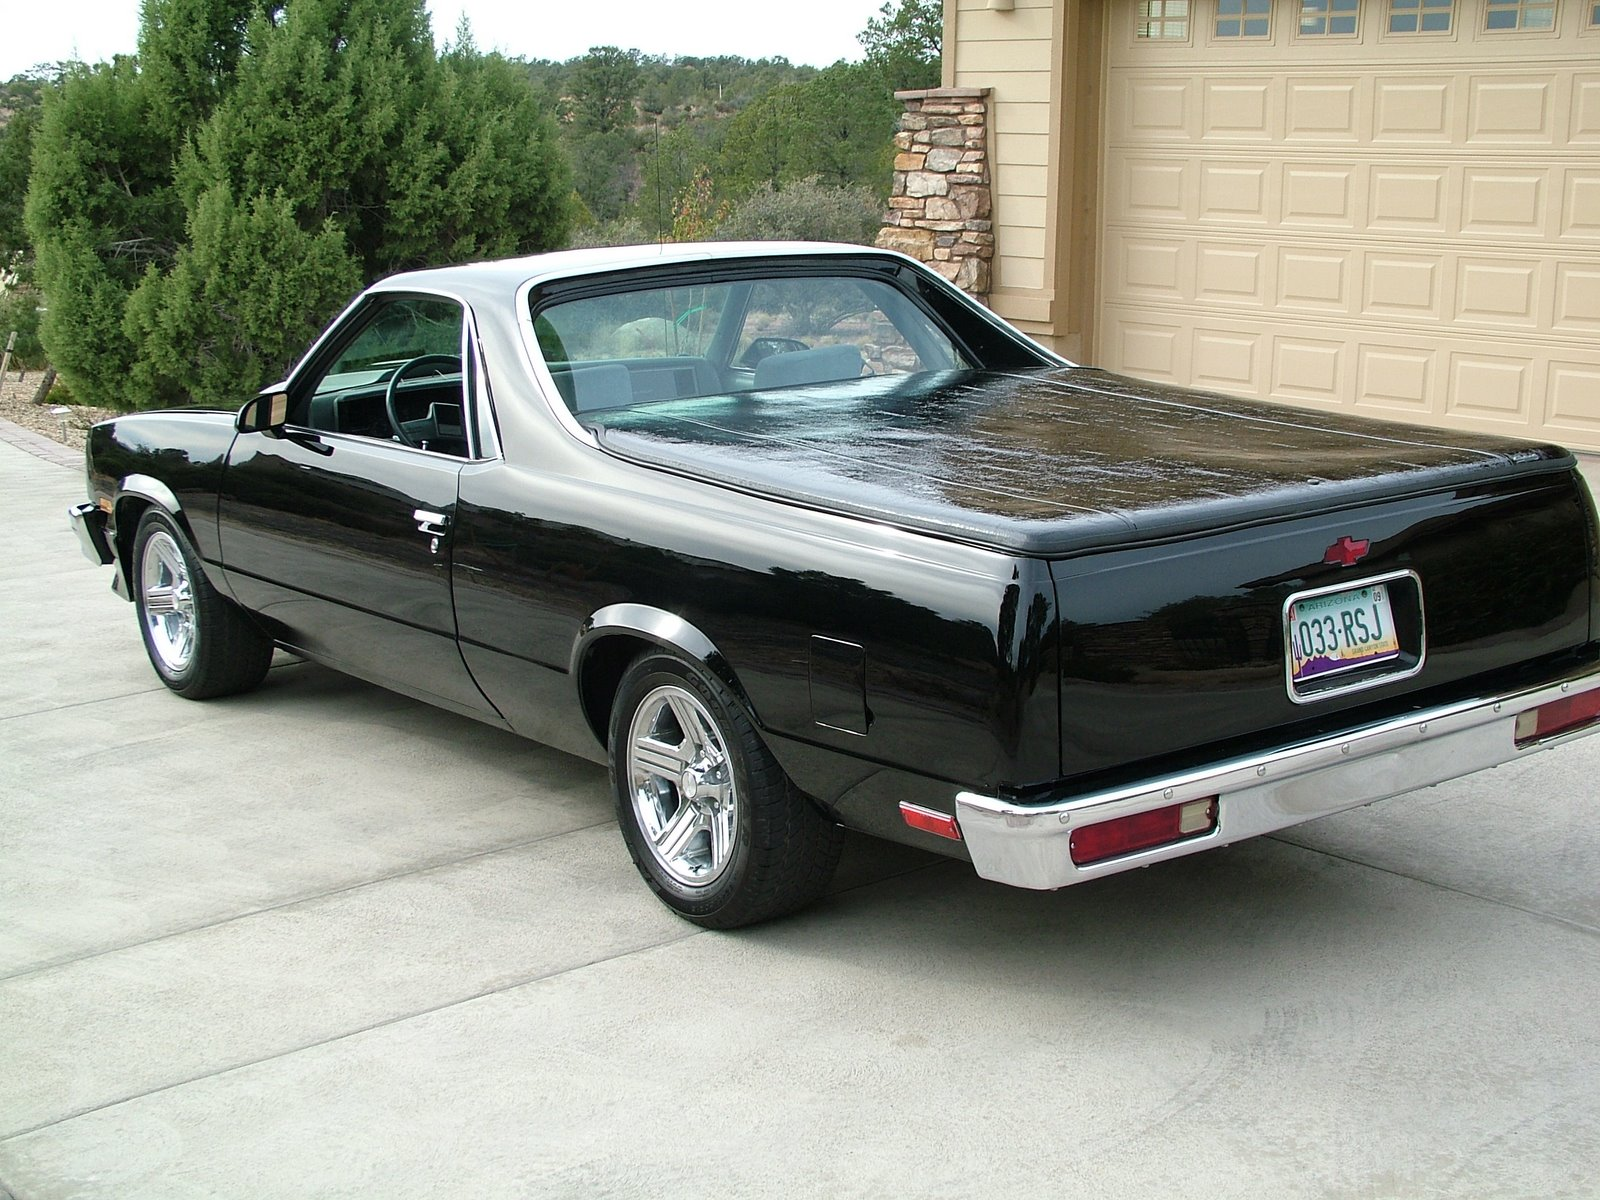 hight resolution of download chevrolet chevy el camino ss car jpeg next